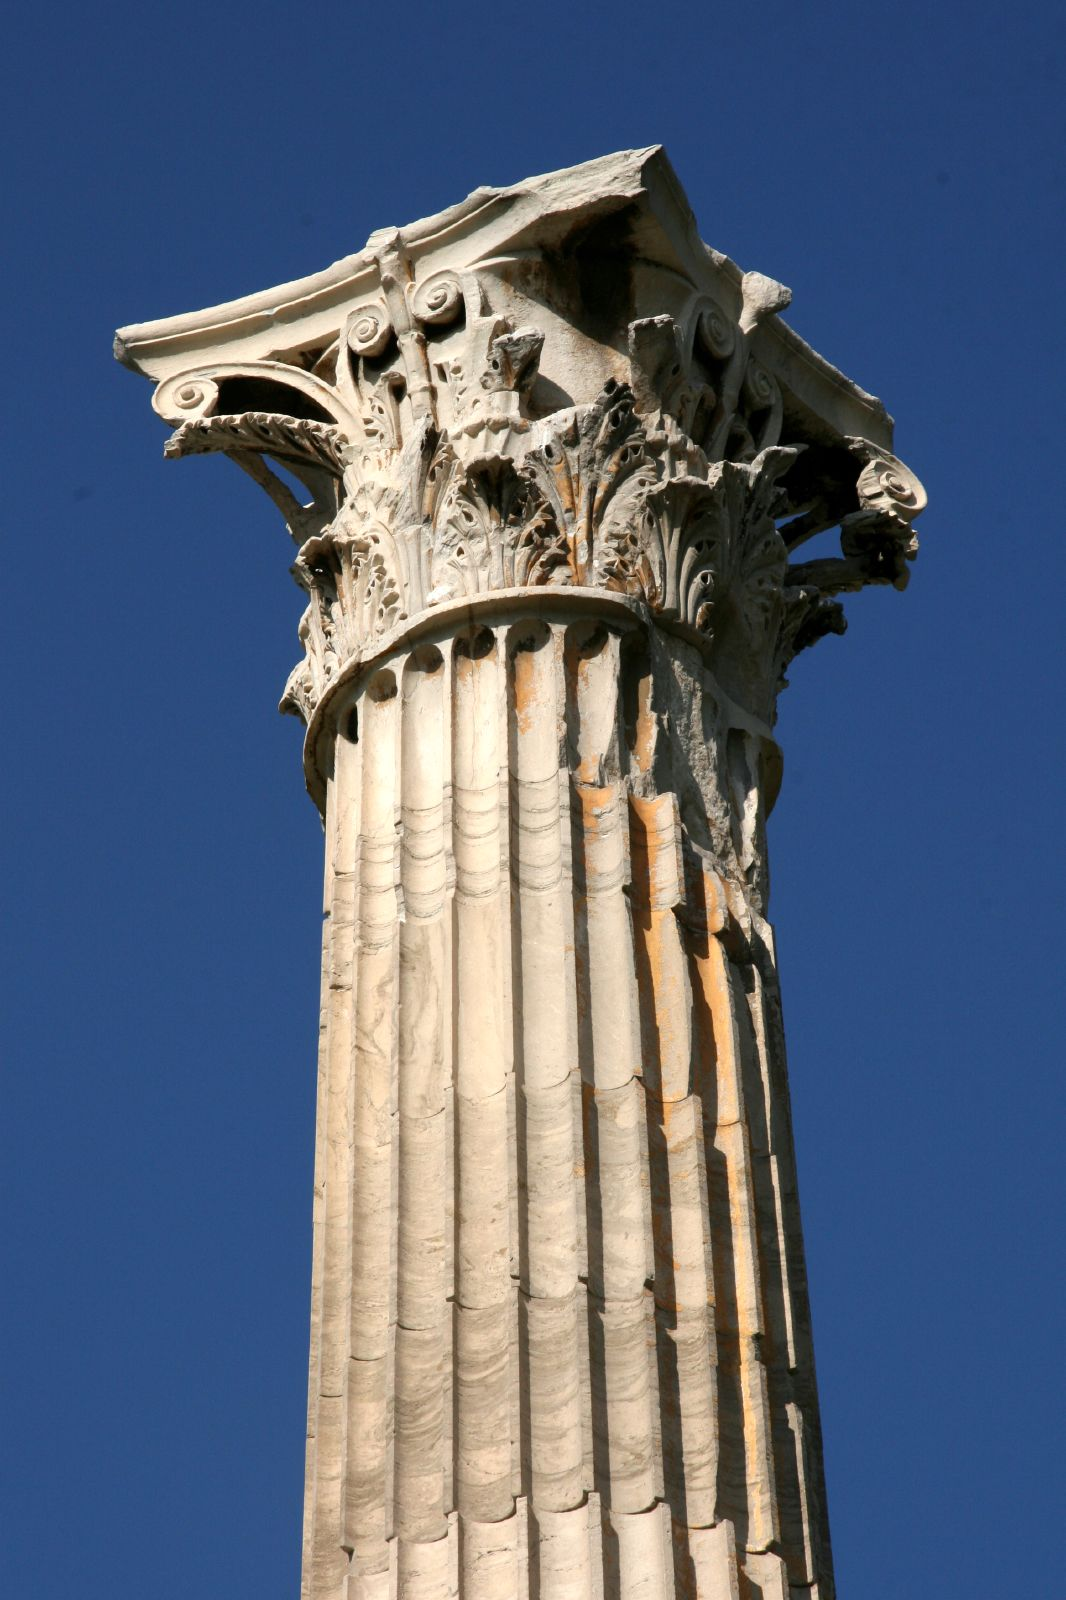 Corinthian_Column_of_the_Temple_of_Zeus_in_Athens